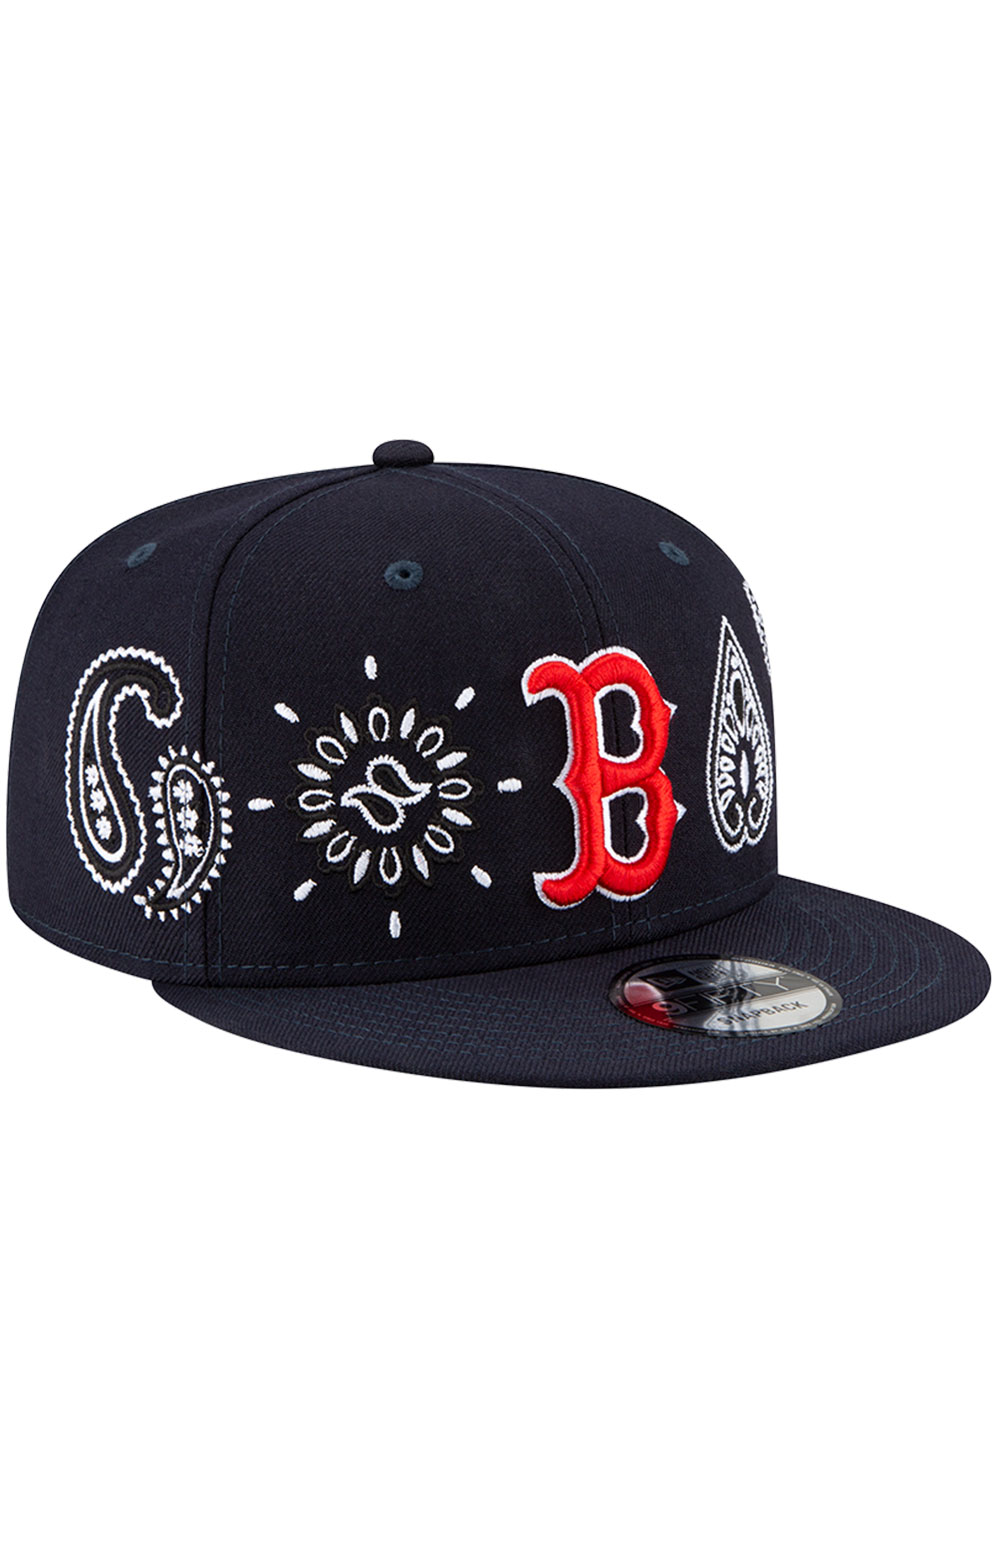 Boston Red Sox Paisley Elements 9Fifty Snap-Back Hat - Black 3